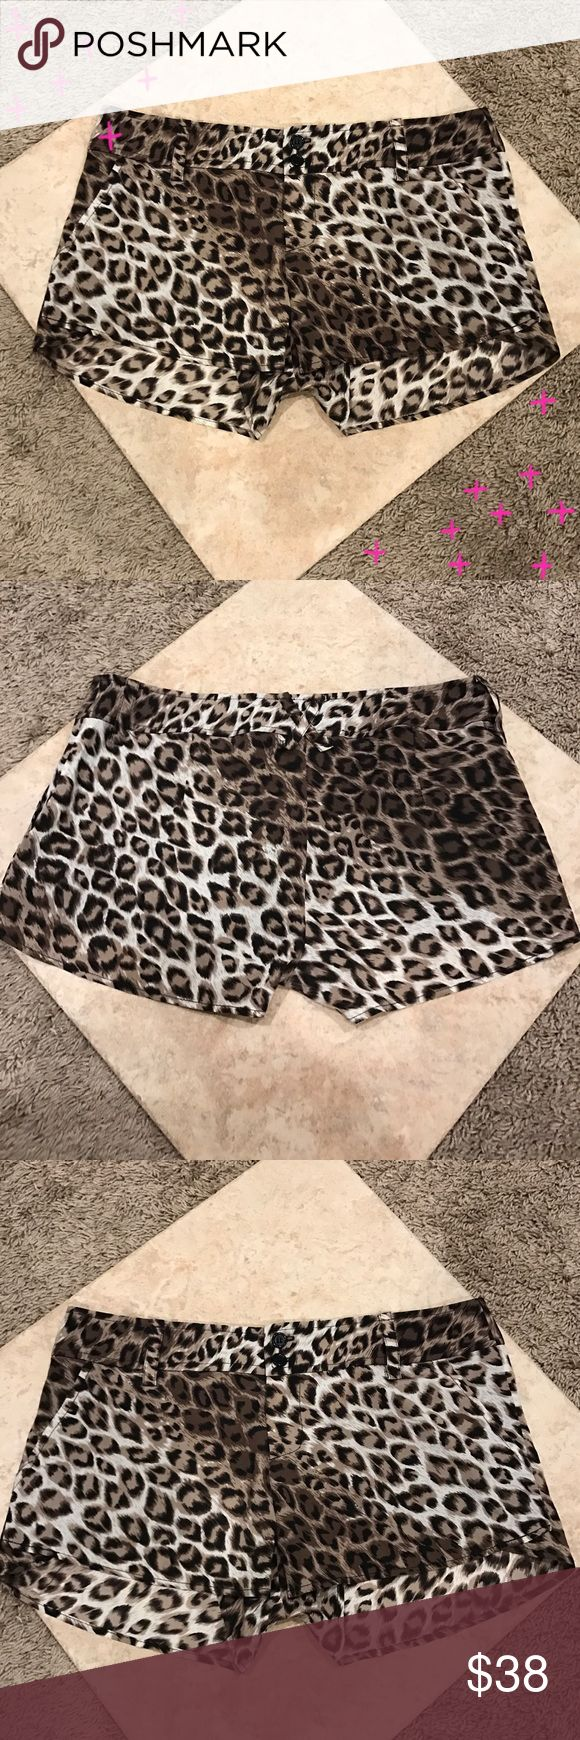 "EUC Alice & Olivia silk cheetah shorts EUC Alice & Olivia cheetah silk shorts. So cute and perfect to dress up or down! Excellent pre worn condition. Approx approx 12"" in length with a 3"" inseam. Alice & Olivia Shorts"